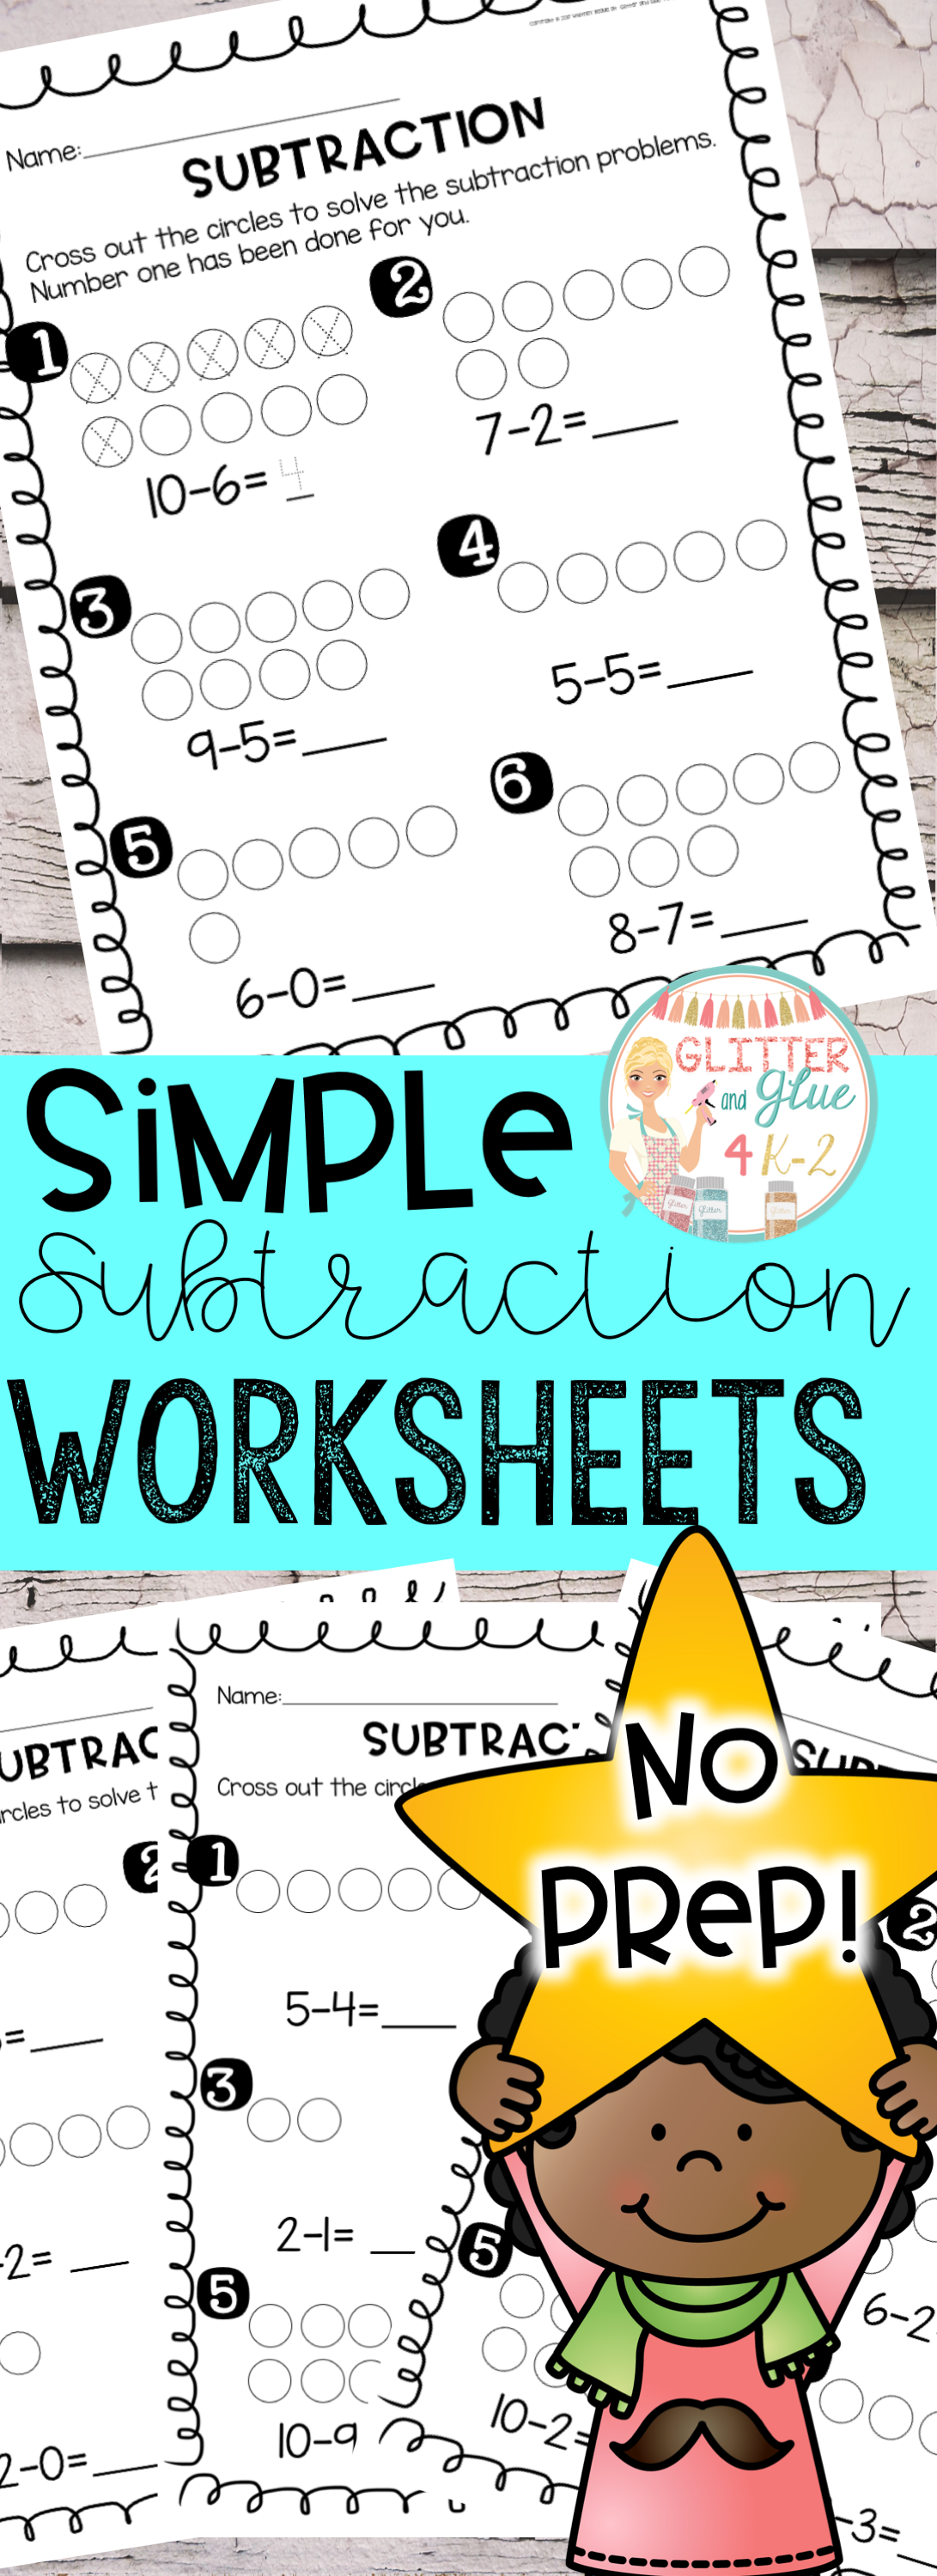 These Worksheets Are Perfect For An Introduction To